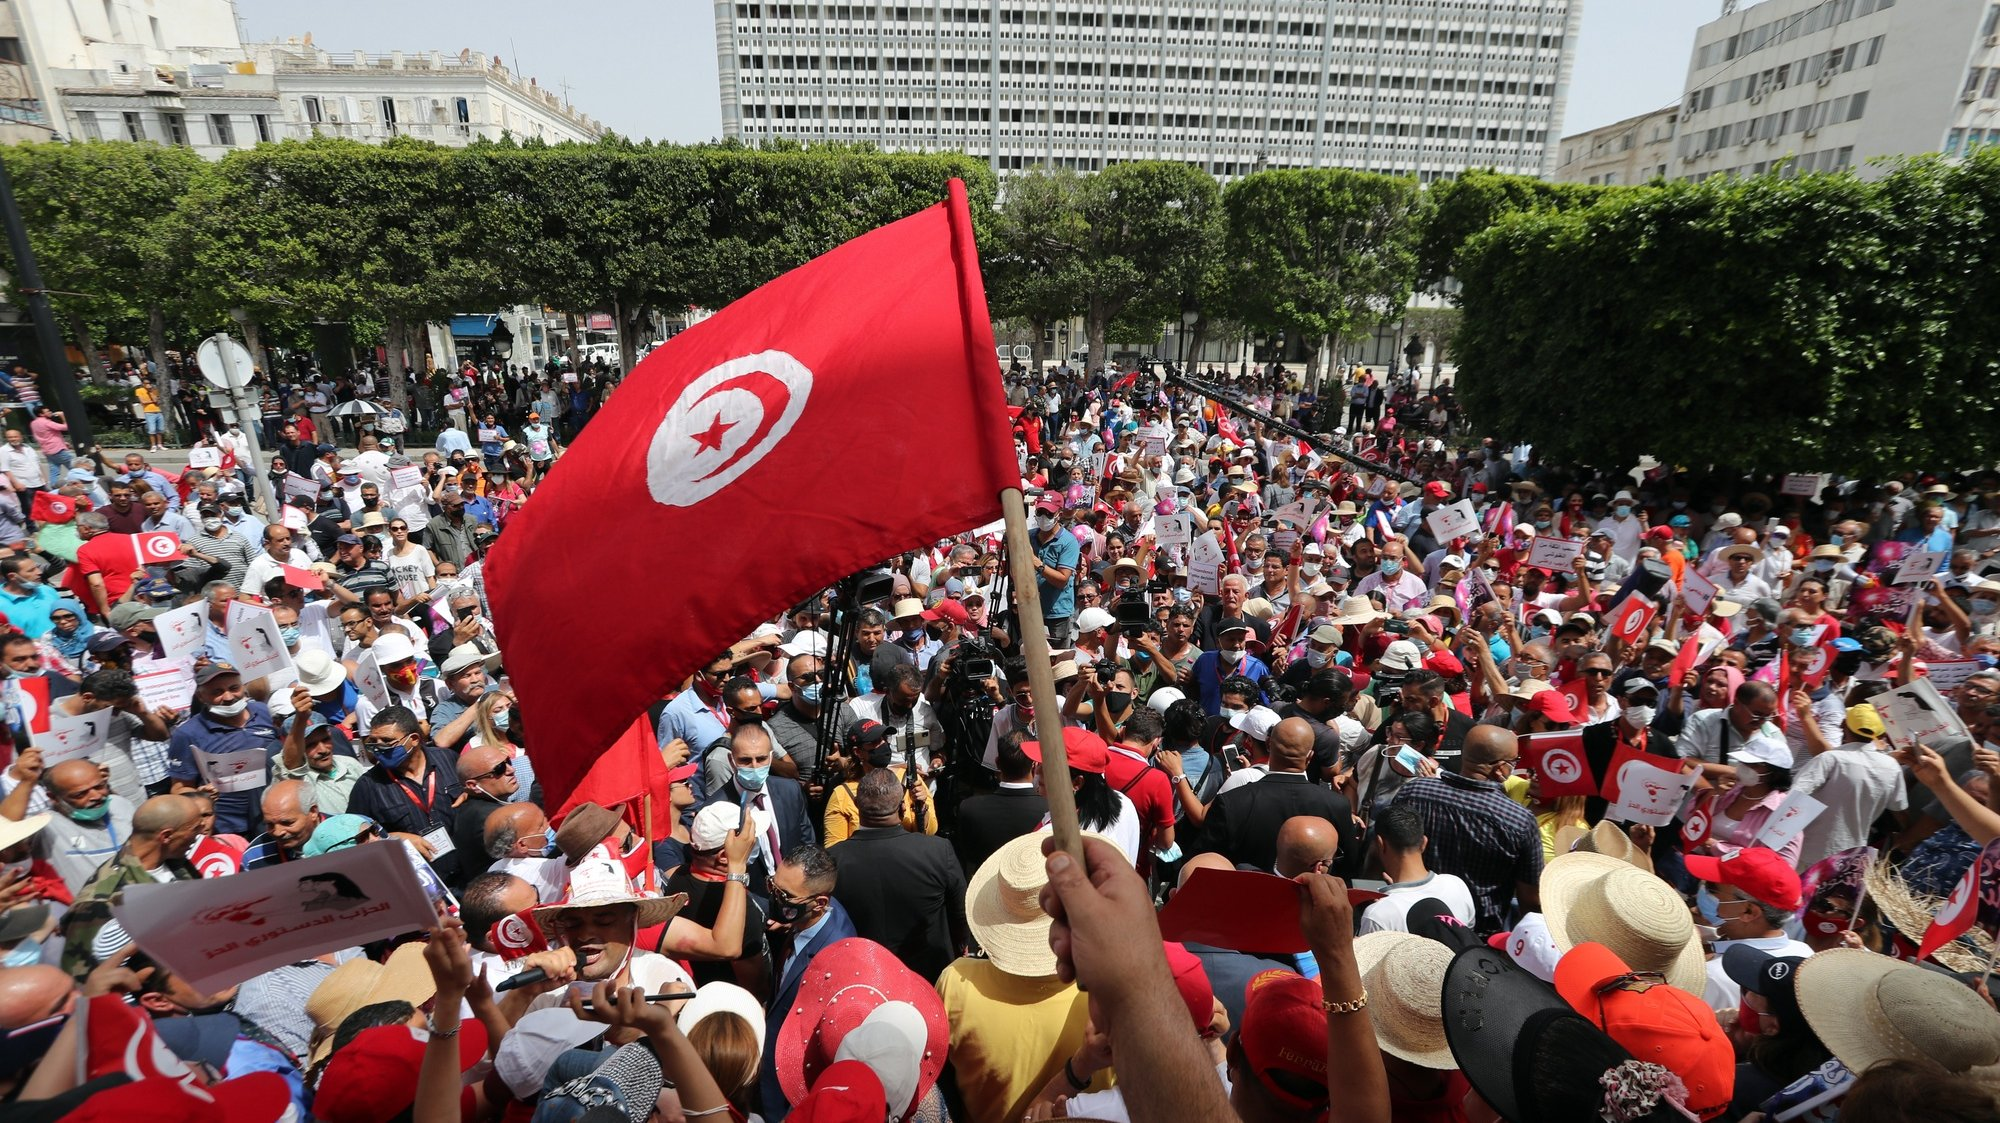 """epa09285695 Supporters of the Free Destourian Party (Free Constitutional Party) shout slogans during protest during a demonstration against political Islamist party Ennahda and the government in Tunis, Tunisia, 19 June 2021. According to the President of the Free Destourian Party, Abir Moussi, """"The national dialogue is useless because the political class is precisely the cause of all the problems. Those who are for the dialogue aim only to artificially prolong the duration of a system which allows them to remain in power where in facade opposition"""".  EPA/MOHAMED MESSARA"""